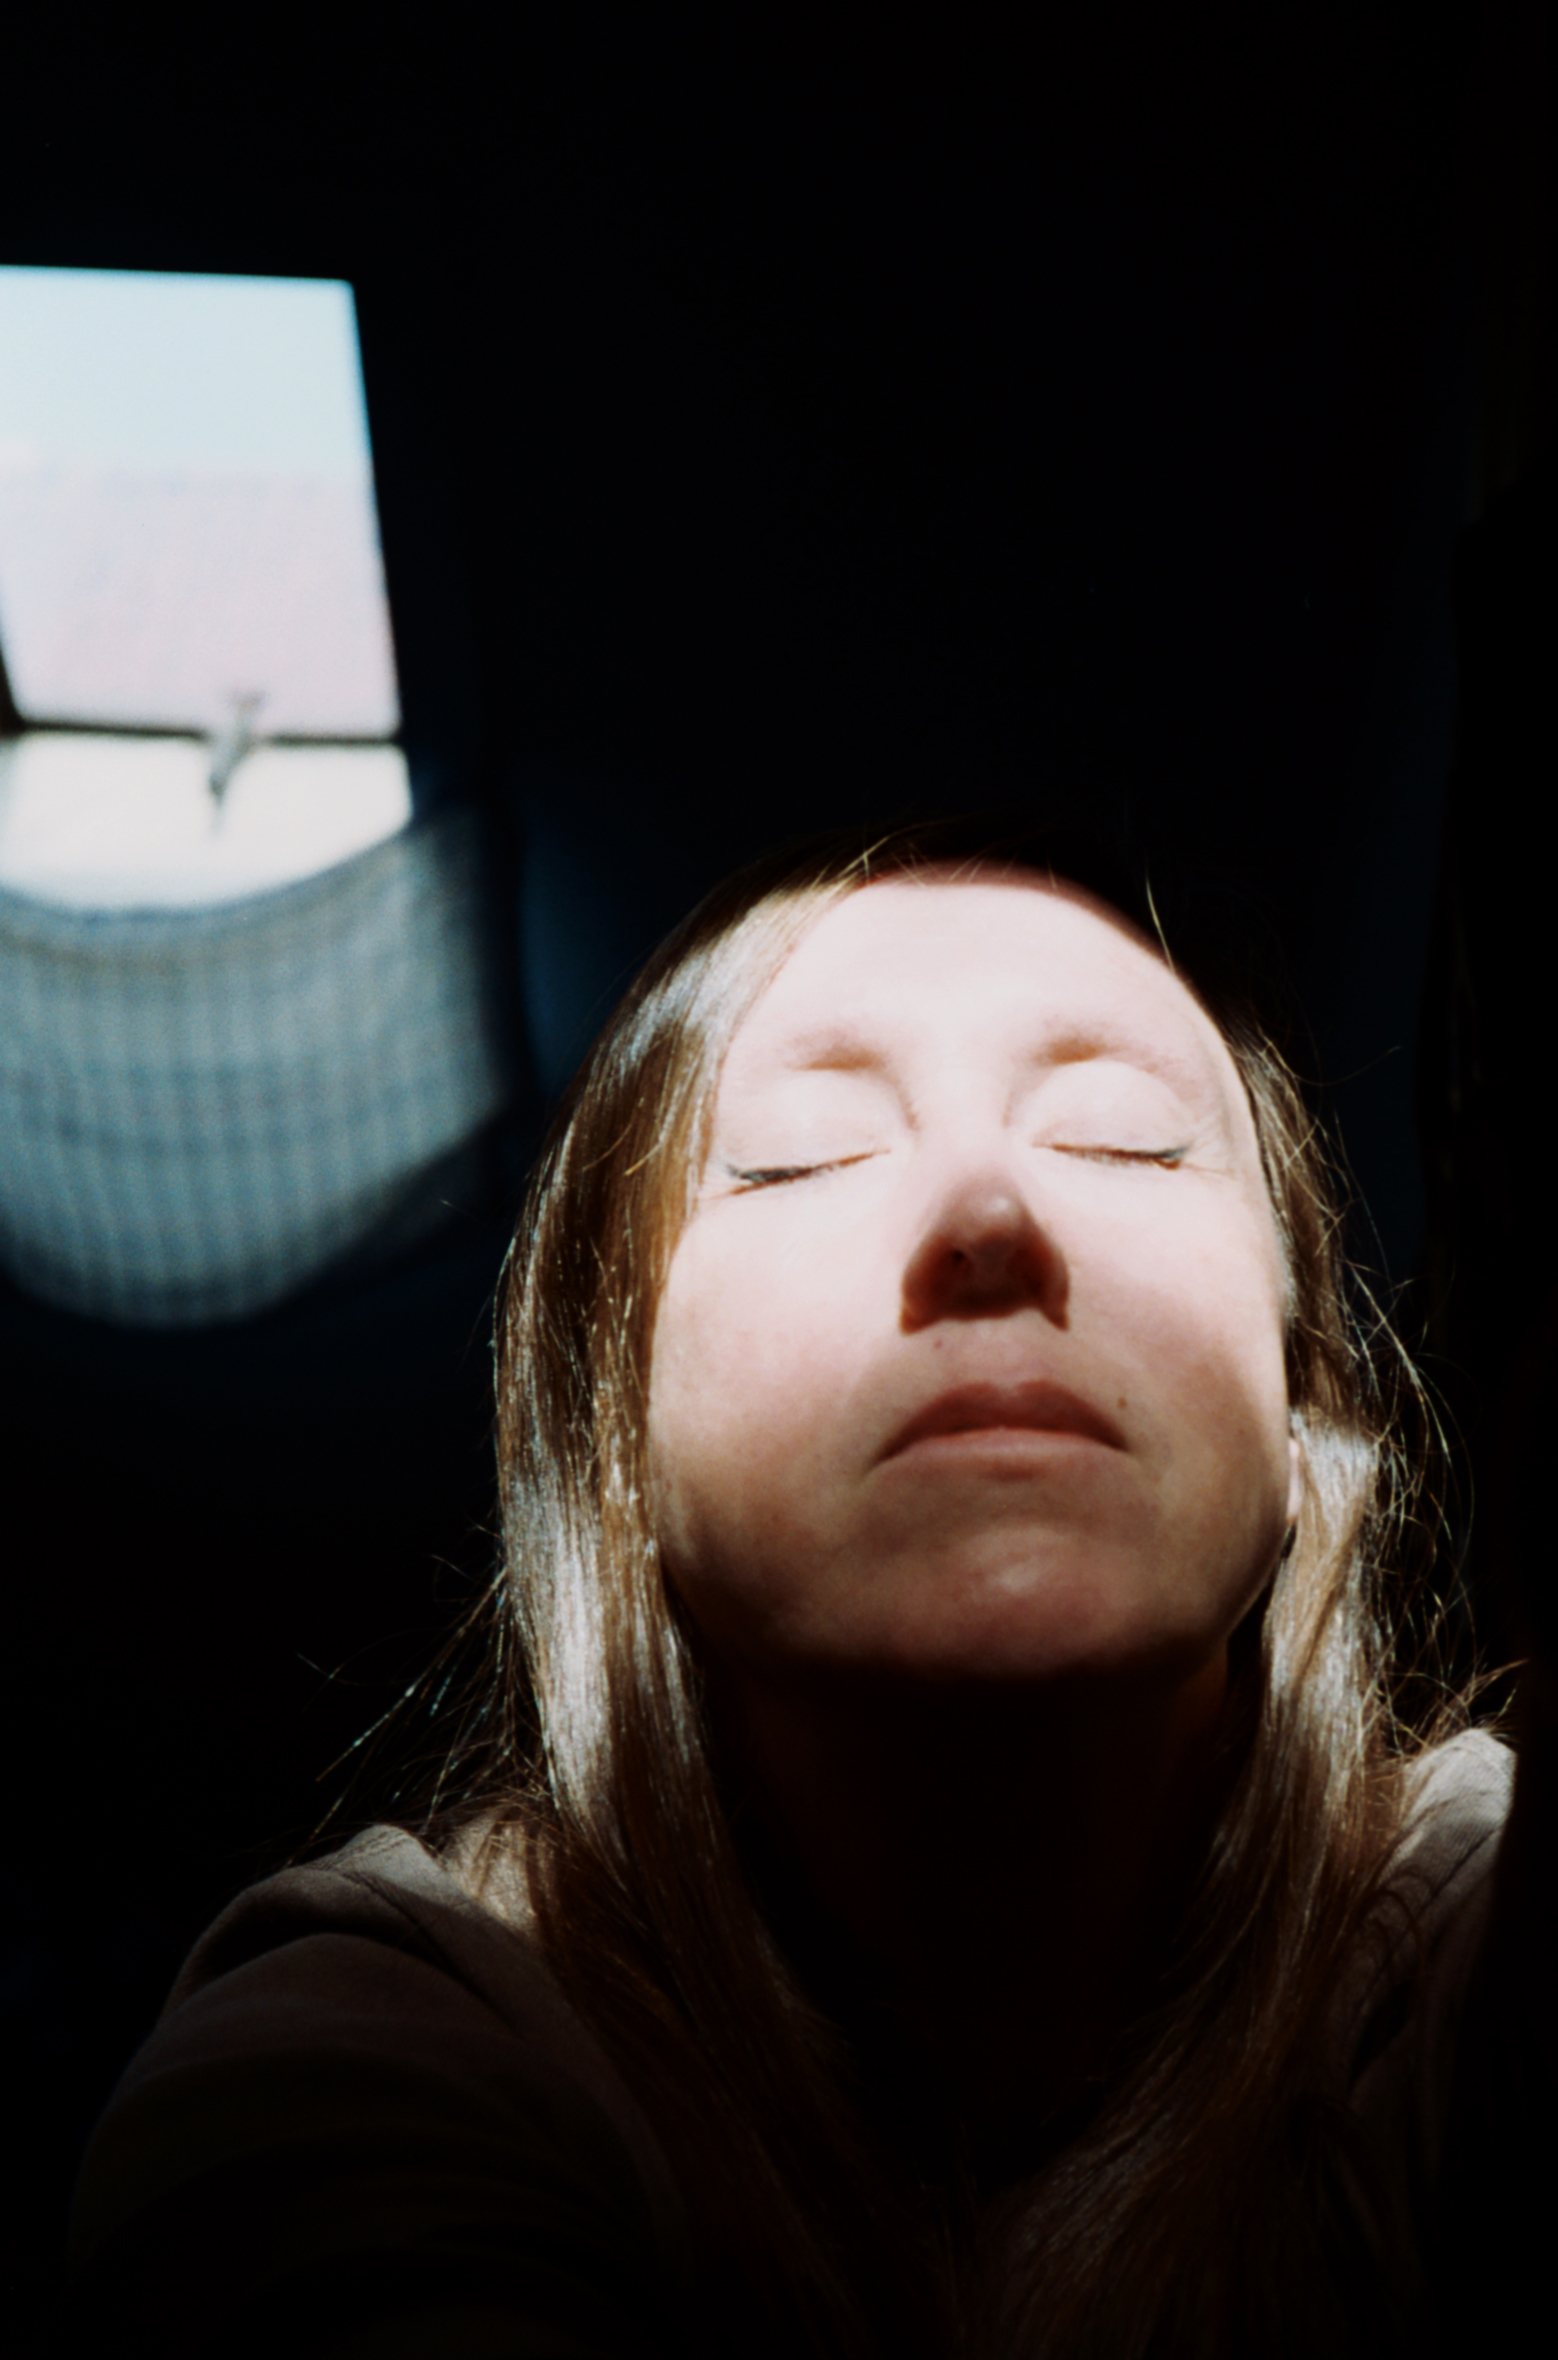 Lique Schoot, Self-portrait 20 07 06